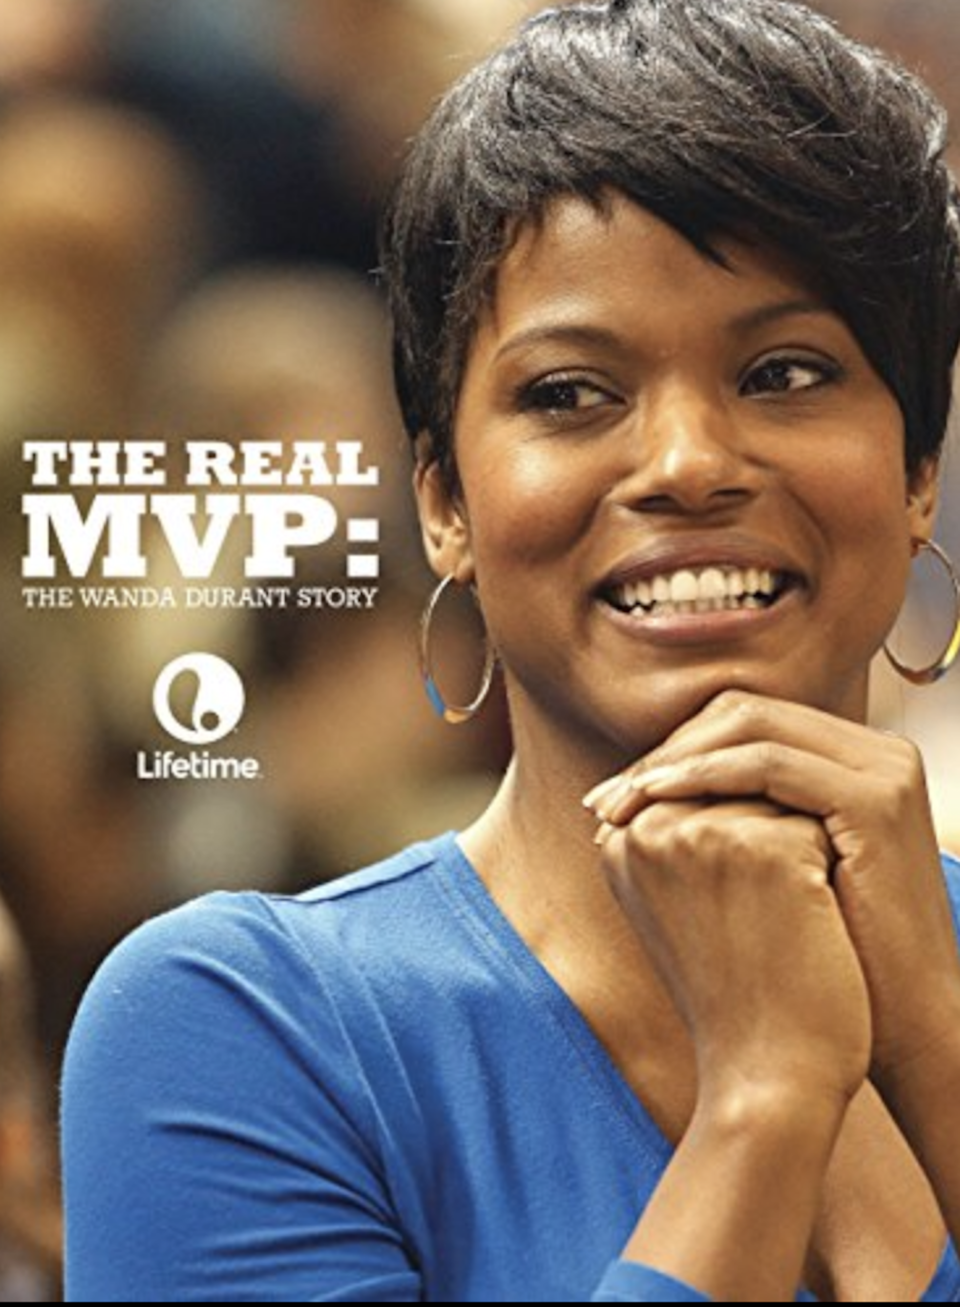 """<p>An inspiring true story about how a single mother, Wanda Durant, worked and struggled to raise her son who would grow up to become of the best basketball players ever: Kevin Durant. Cassandra Freeman stars as Wanda, while Daniel Bellomy plays Kevin in this inspirational Lifetime film.</p> <p><a href=""""https://www.amazon.com/Real-MVP-Wanda-Durant-Story/dp/B01FIE24NI/ref=sr_1_1?dchild=1&keywords=The+Real+MVP%3A+The+Wanda+Durant+Story&qid=1595444392&sr=8-1"""" rel=""""nofollow noopener"""" target=""""_blank"""" data-ylk=""""slk:Stream on Amazon Prime Video"""" class=""""link rapid-noclick-resp""""><em>Stream on Amazon Prime Video</em></a></p>"""